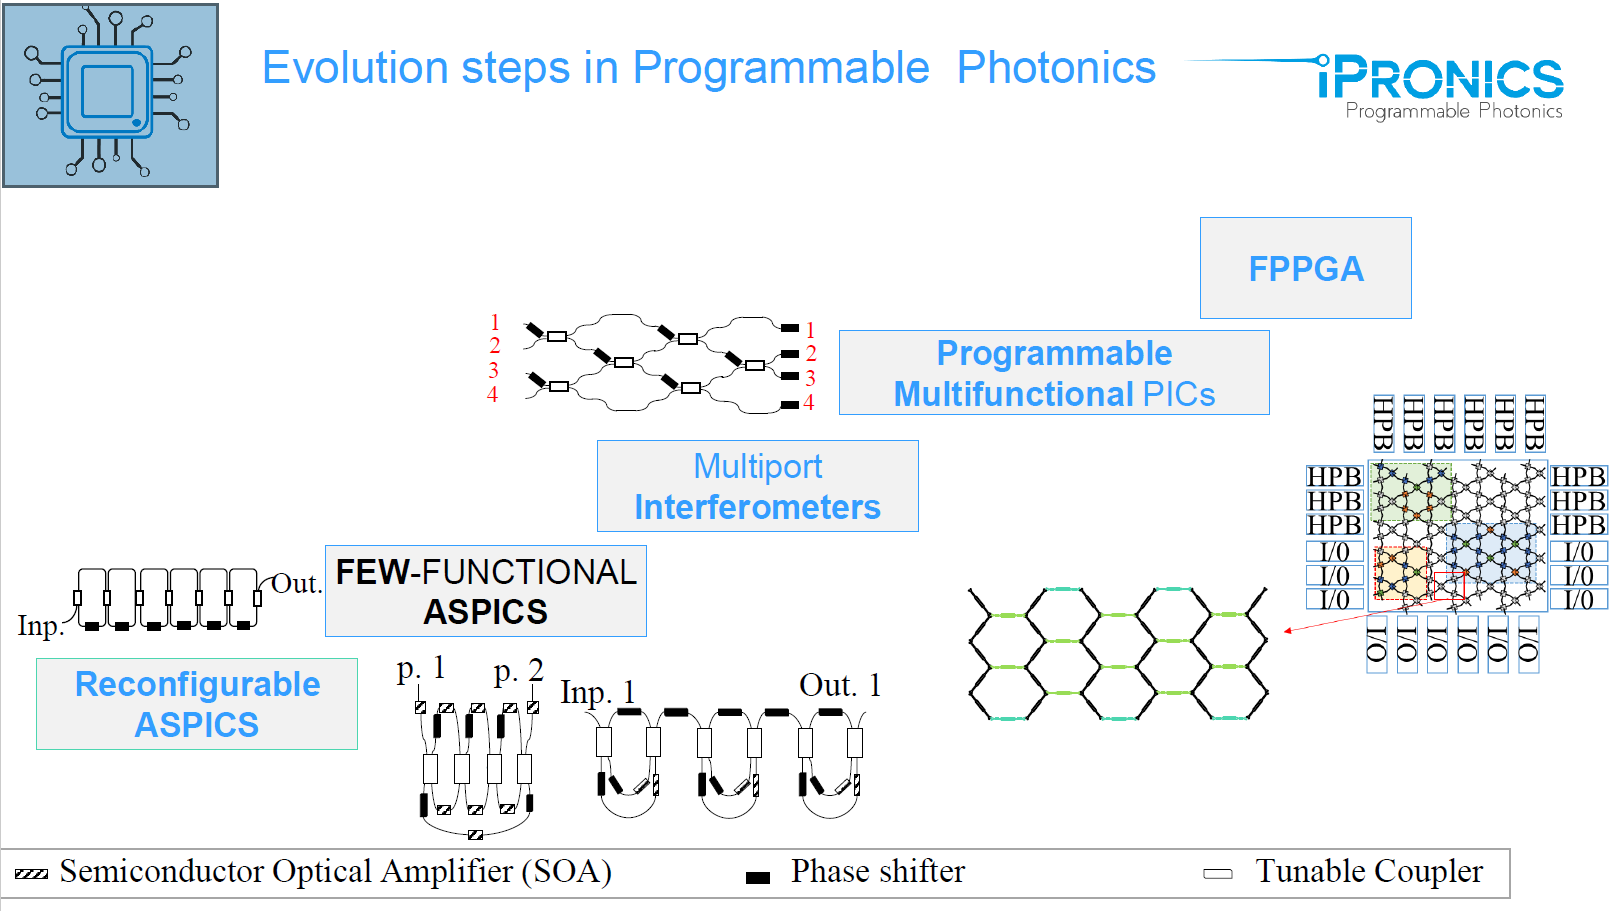 Evolution of programmable photonics